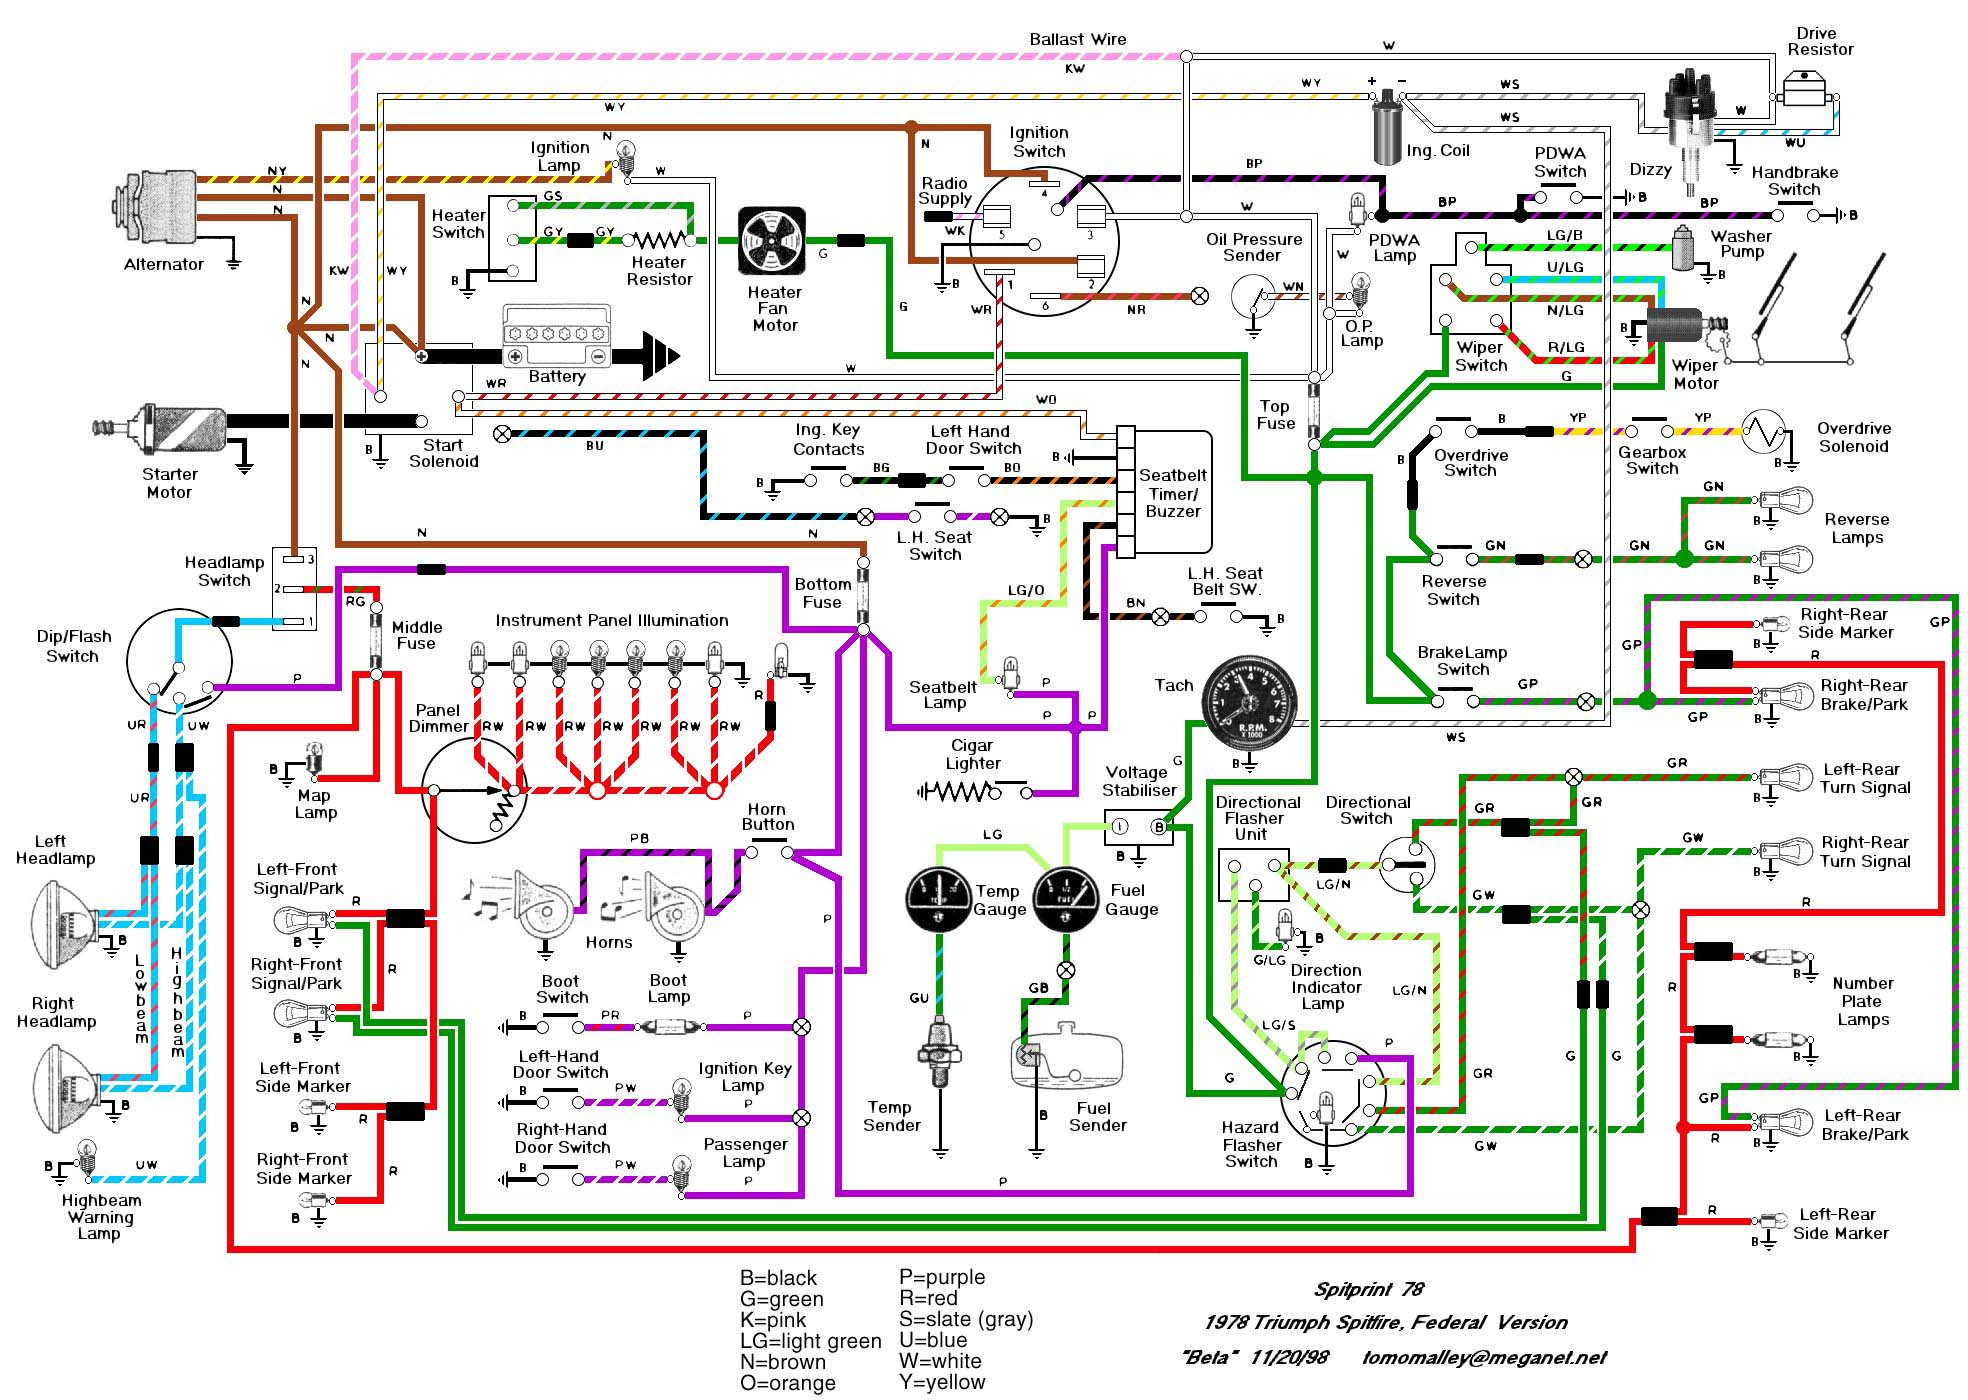 Triumph Wiring Diagrams Simple Wiring Diagram Triumph Bonneville 08 Triumph  Wiring Diagrams